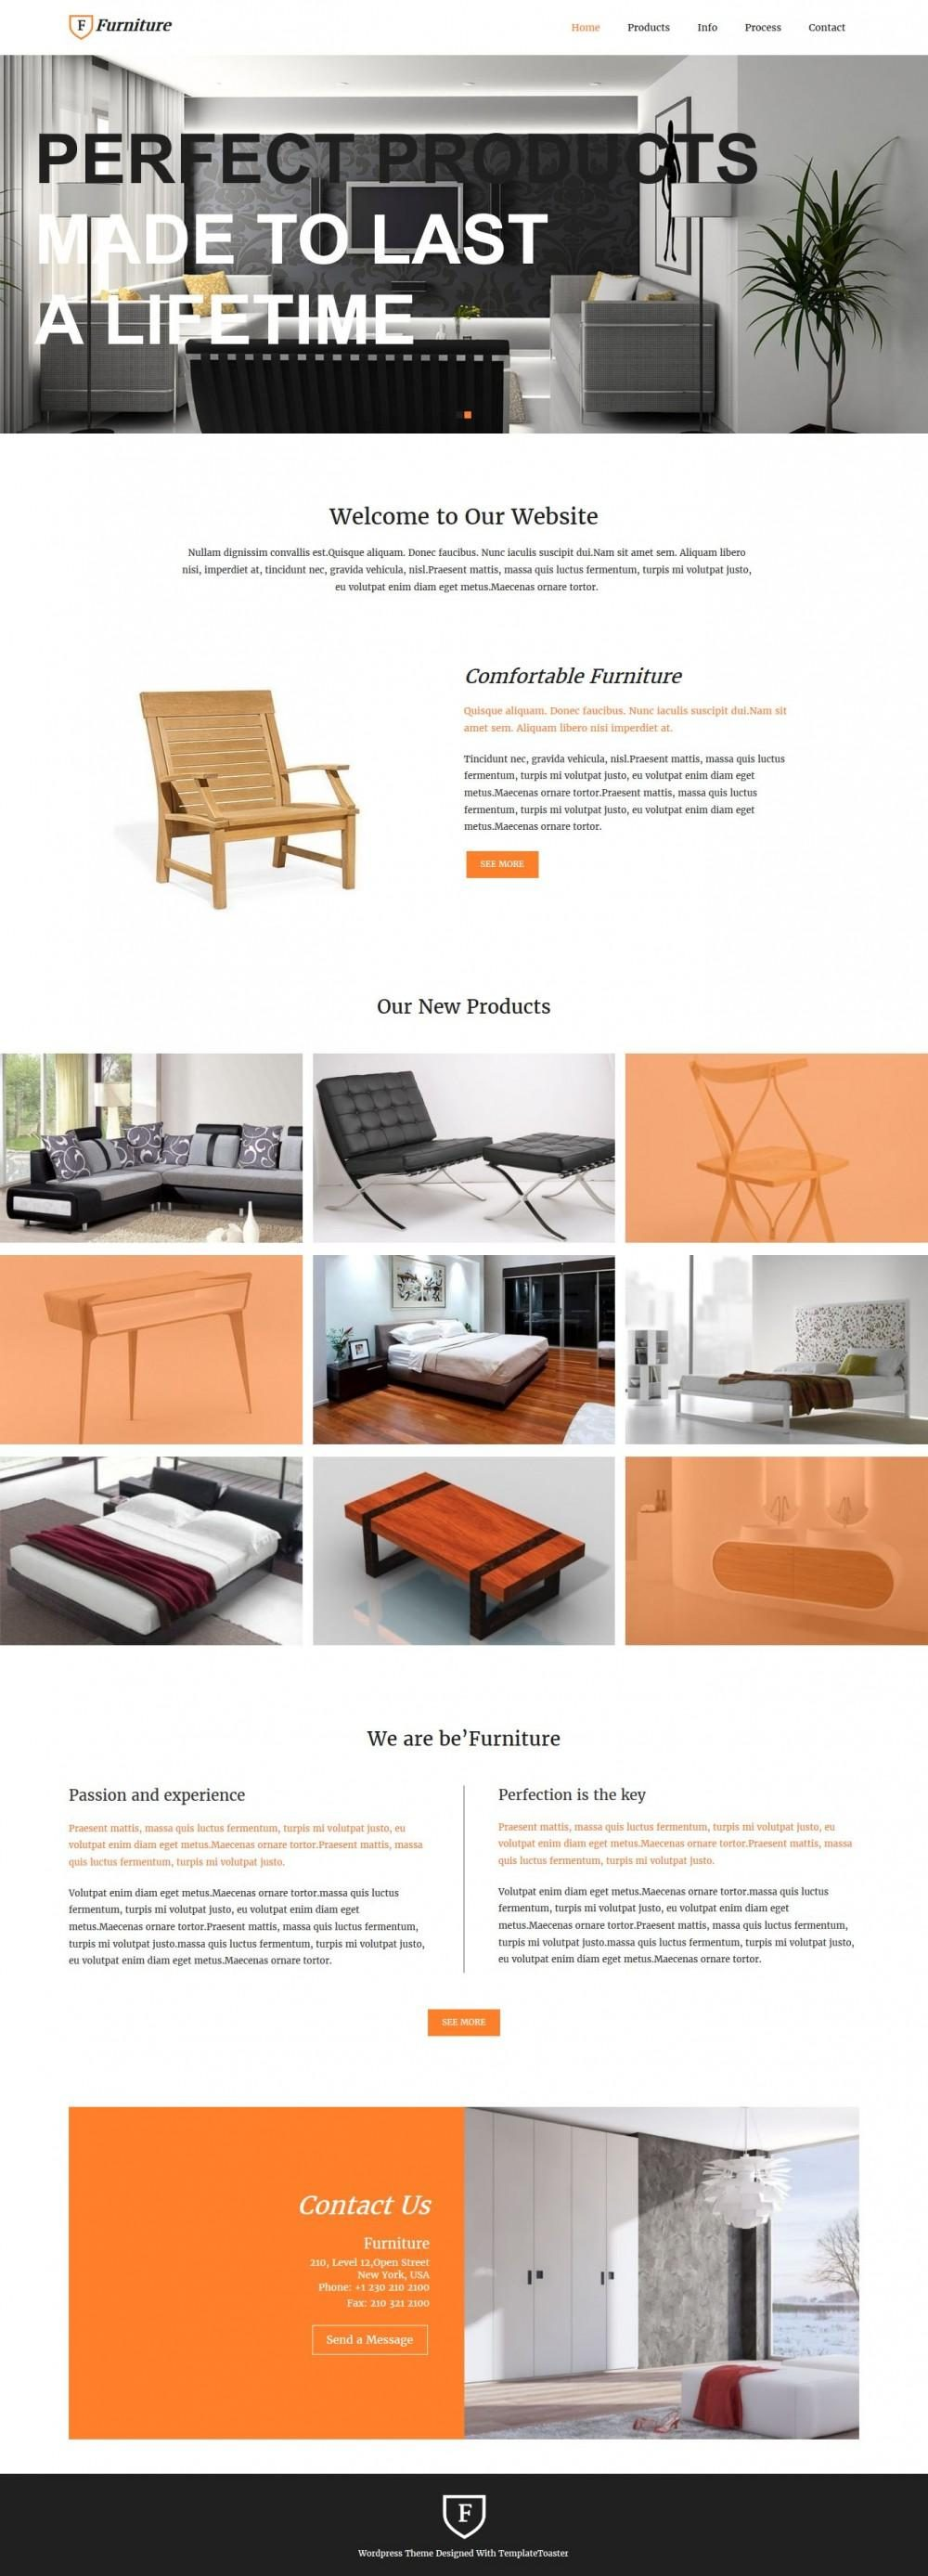 Furniture - Joomla Template for Furniture Enterprises